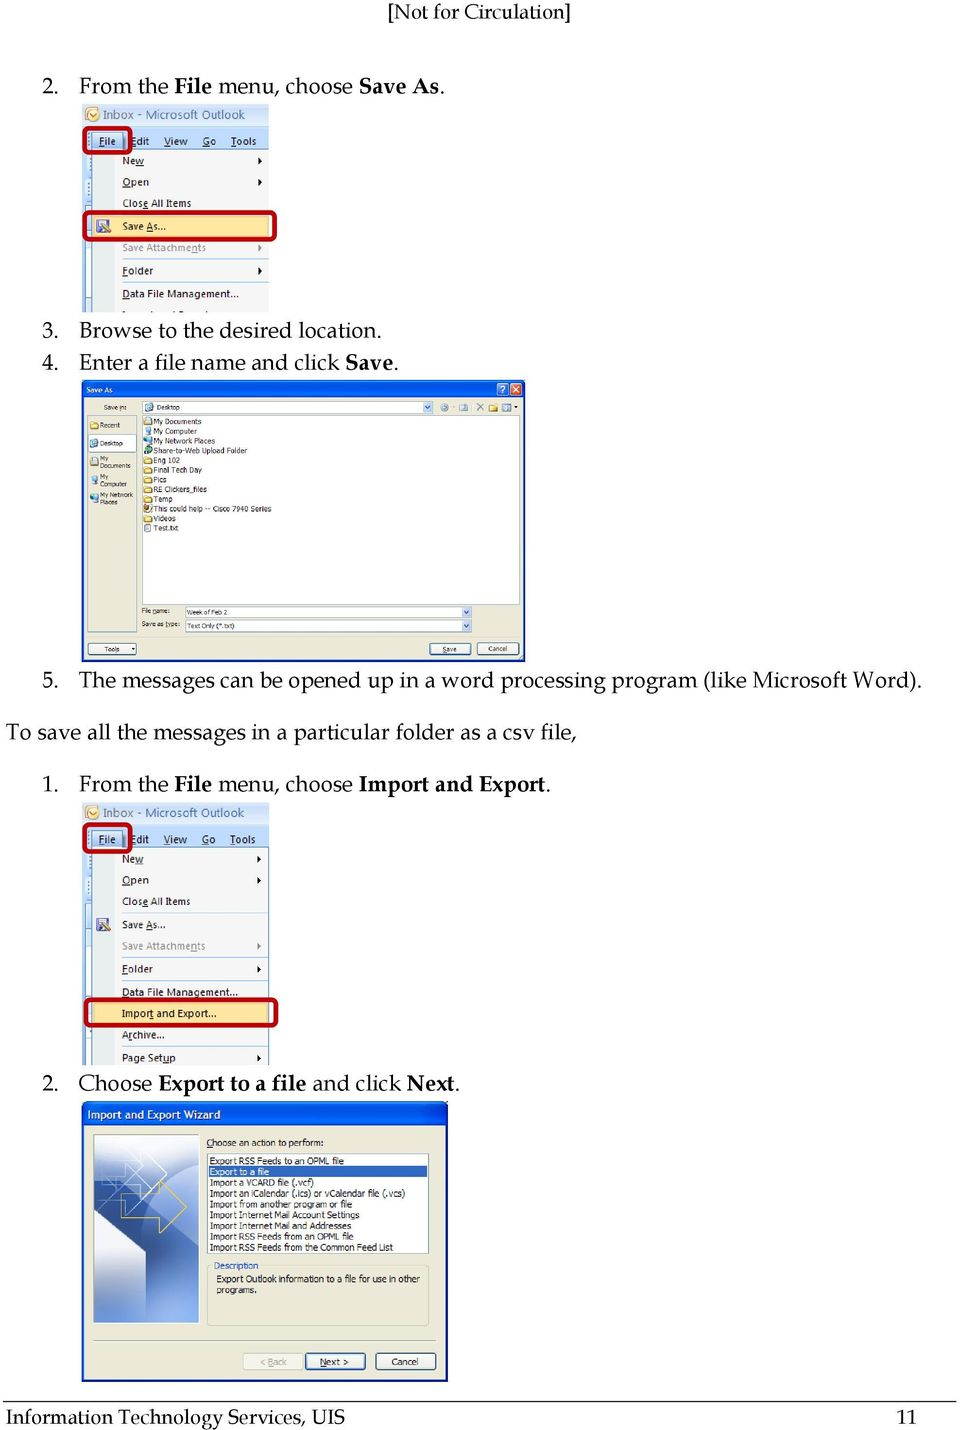 The messages can be opened up in a word processing program (like Microsoft Word).